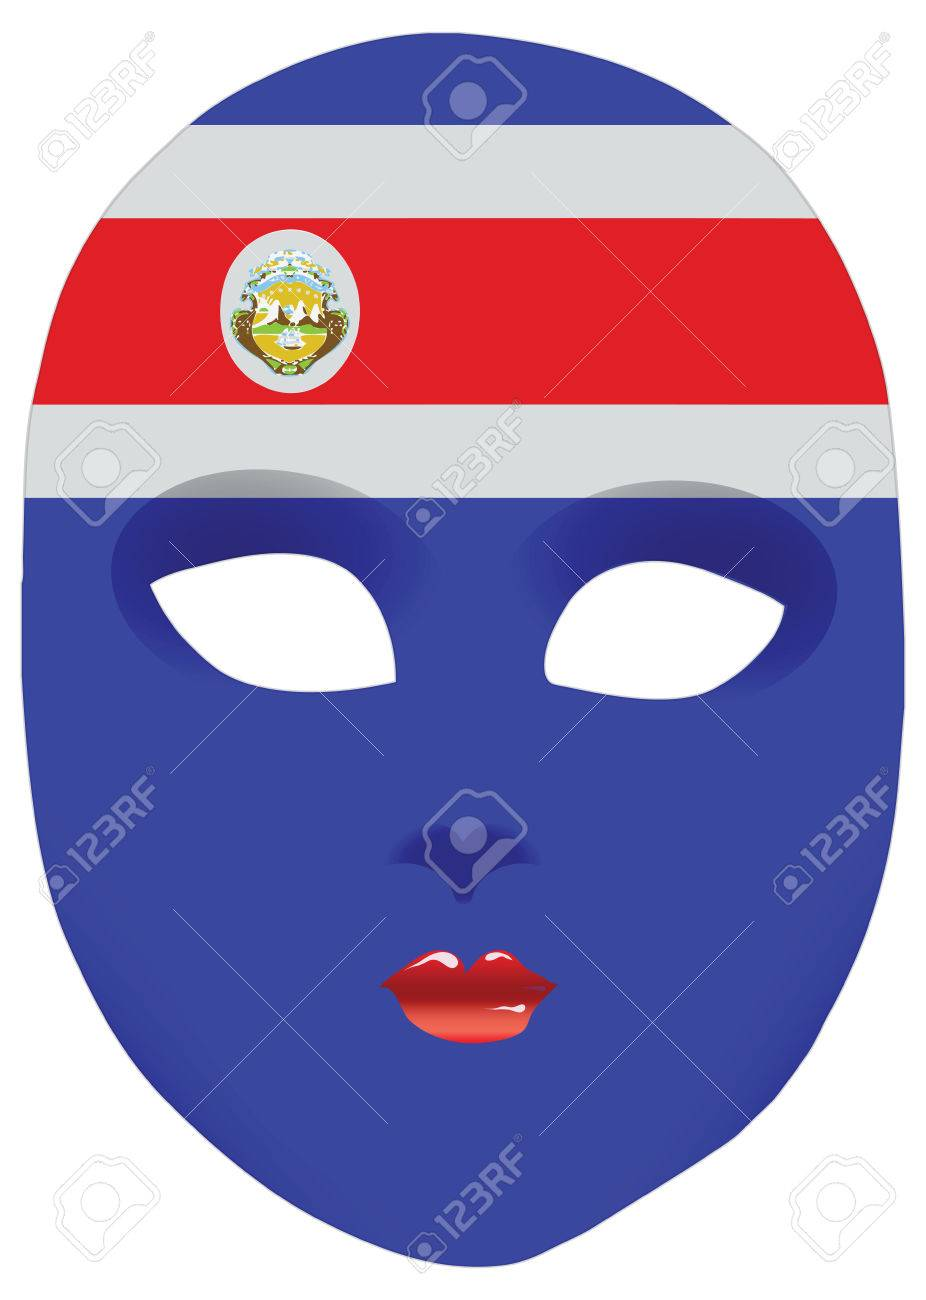 Classic Mask With Symbols Of Statehood Of Costa Rica Vector